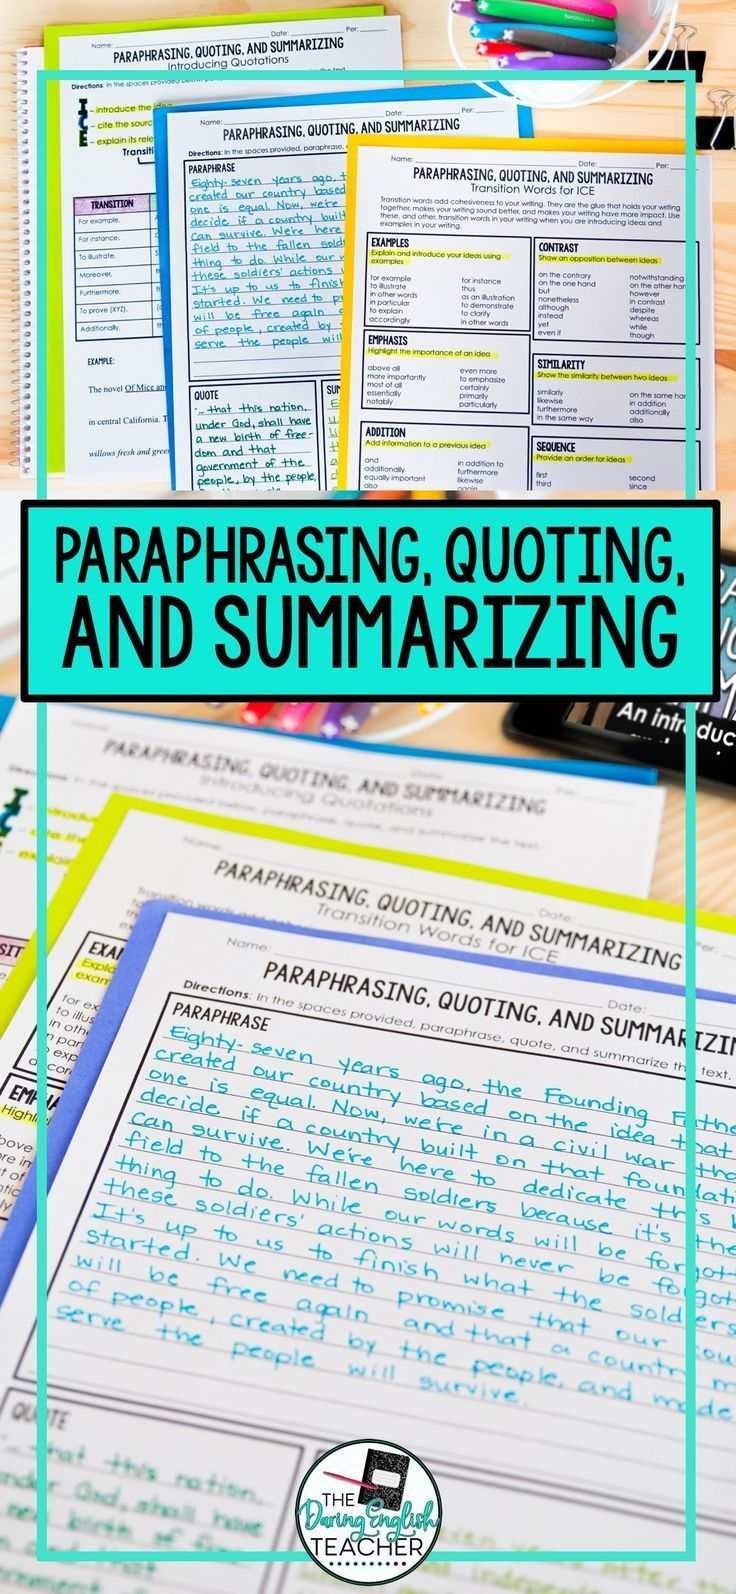 Paraphrasing Quoting And Summarizing Writing Lesson Middle School Teaching Practice Worksheet